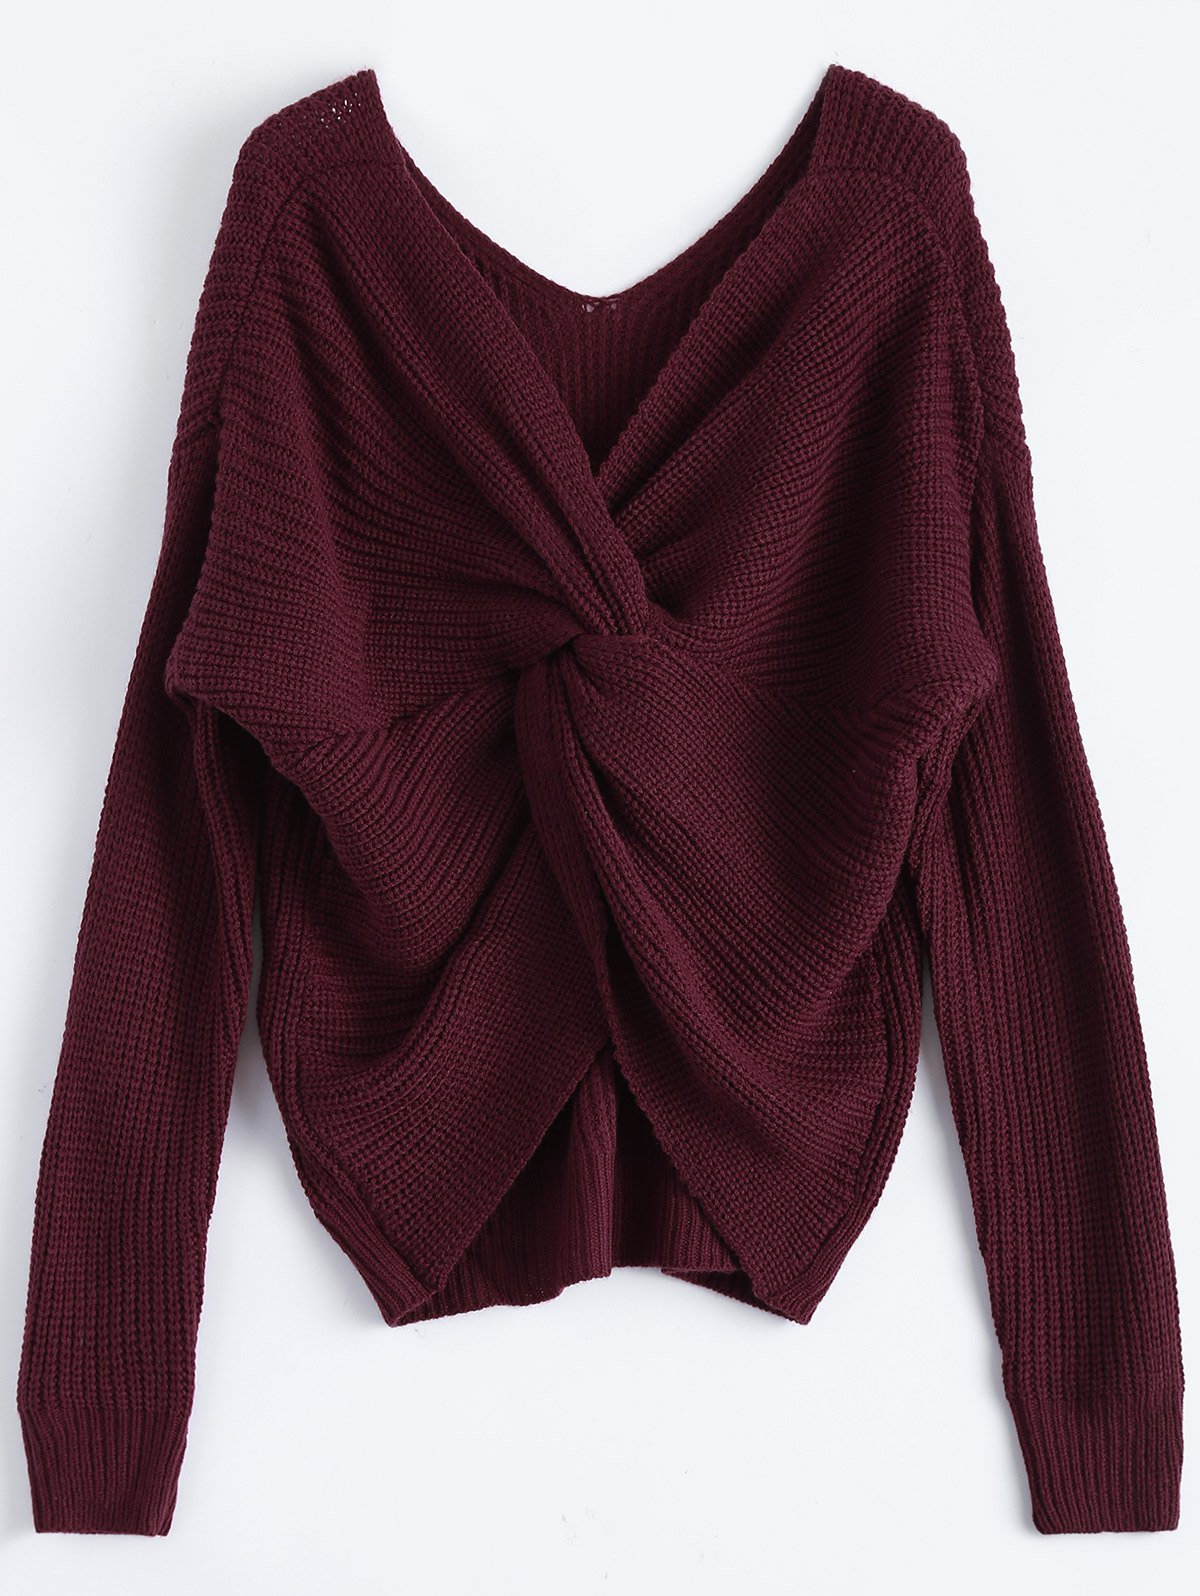 V Neck Twisted Back SweaterWOMEN<br><br>Size: ONE SIZE; Color: BURGUNDY; Type: Pullovers; Material: Acrylic,Cotton,Polyester; Sleeve Length: Full; Collar: V-Neck; Style: Fashion; Pattern Type: Solid; Season: Fall,Spring,Winter; Weight: 0.4700kg; Package Contents: 1 x Sweater;